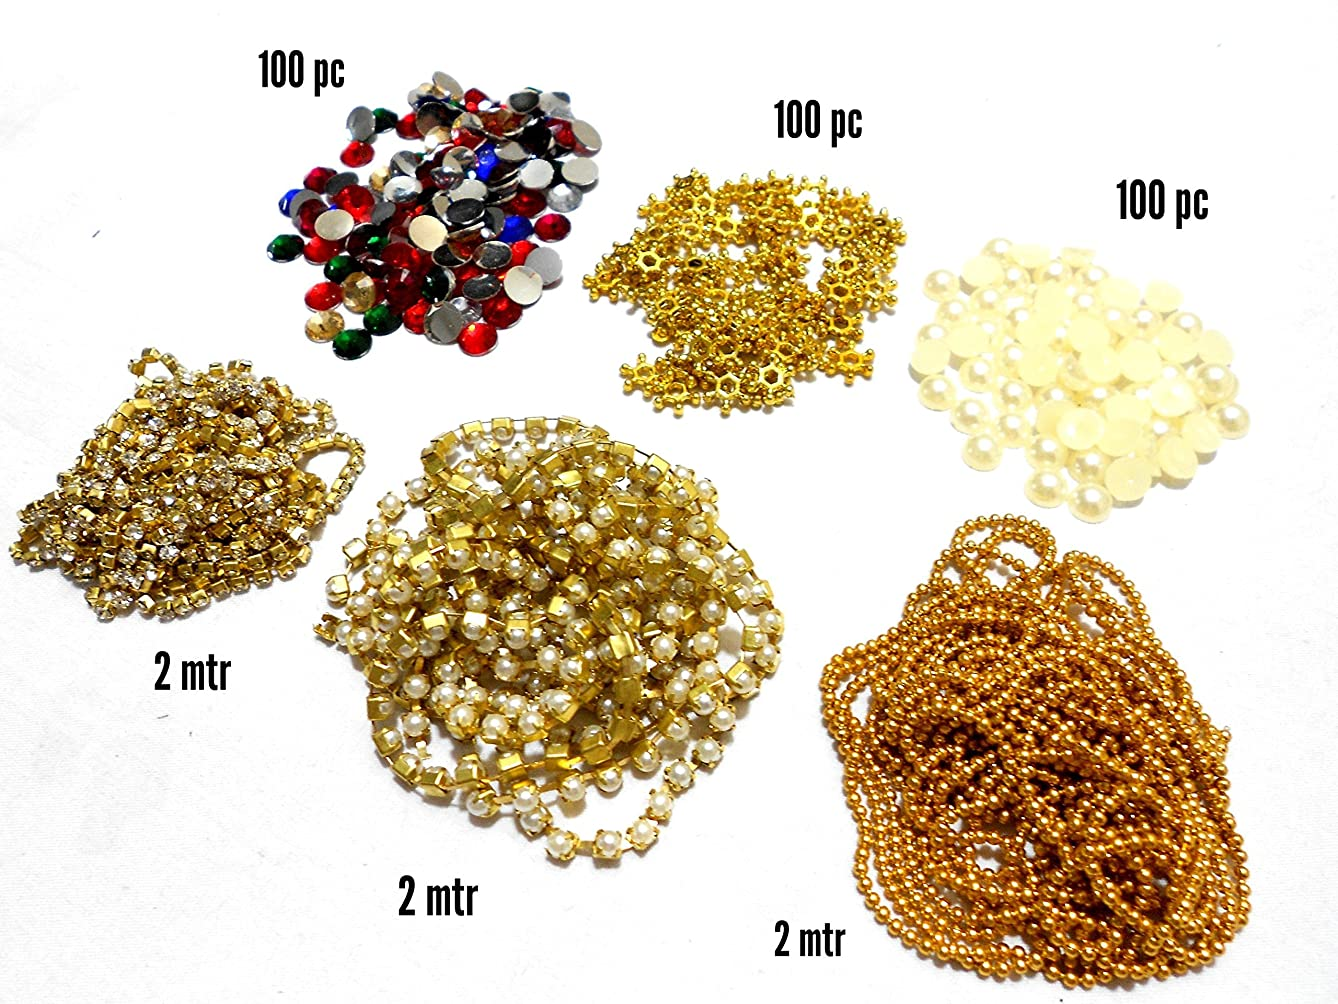 GOELX Jewellery Making & Decorating 6 Items Combo Set Includes Chains(3 Types), Pearls, Colourful Kundans, Daisy Star Chakri 100 Pcs